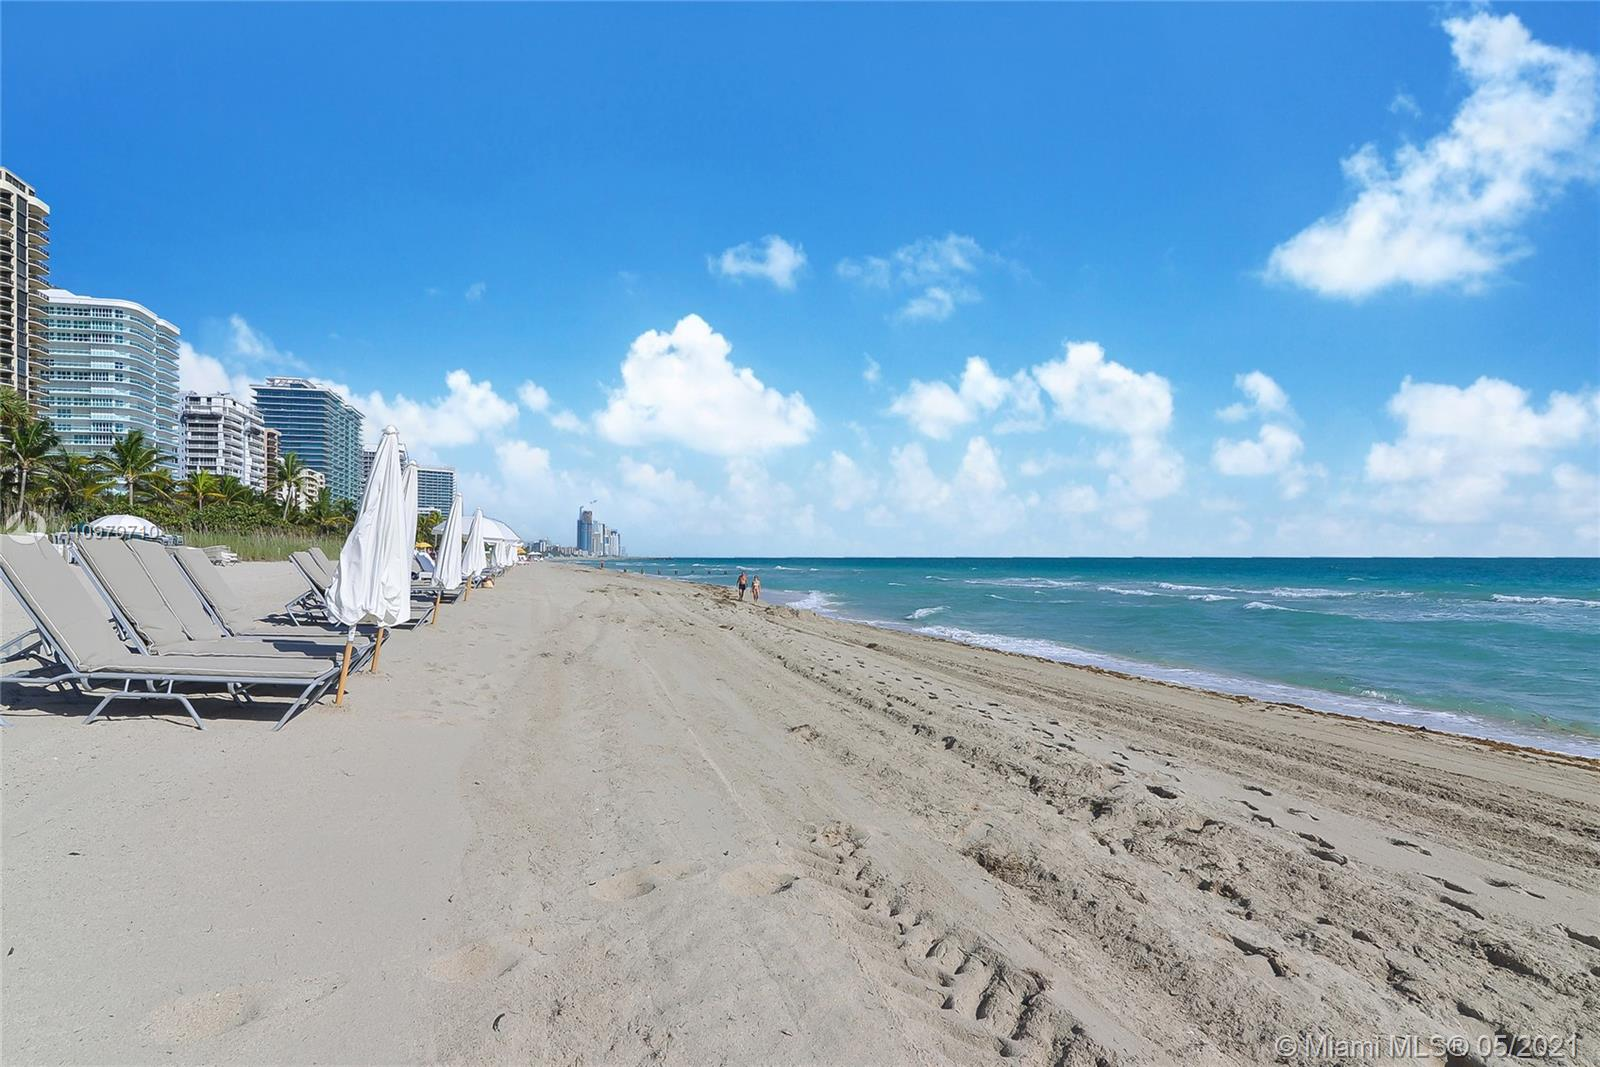 Photo of 9801 Collins Ave #10R, Bal Harbour, Florida, 33154 - Balmoral Beach service (chairs, table umbrella, towels, water)